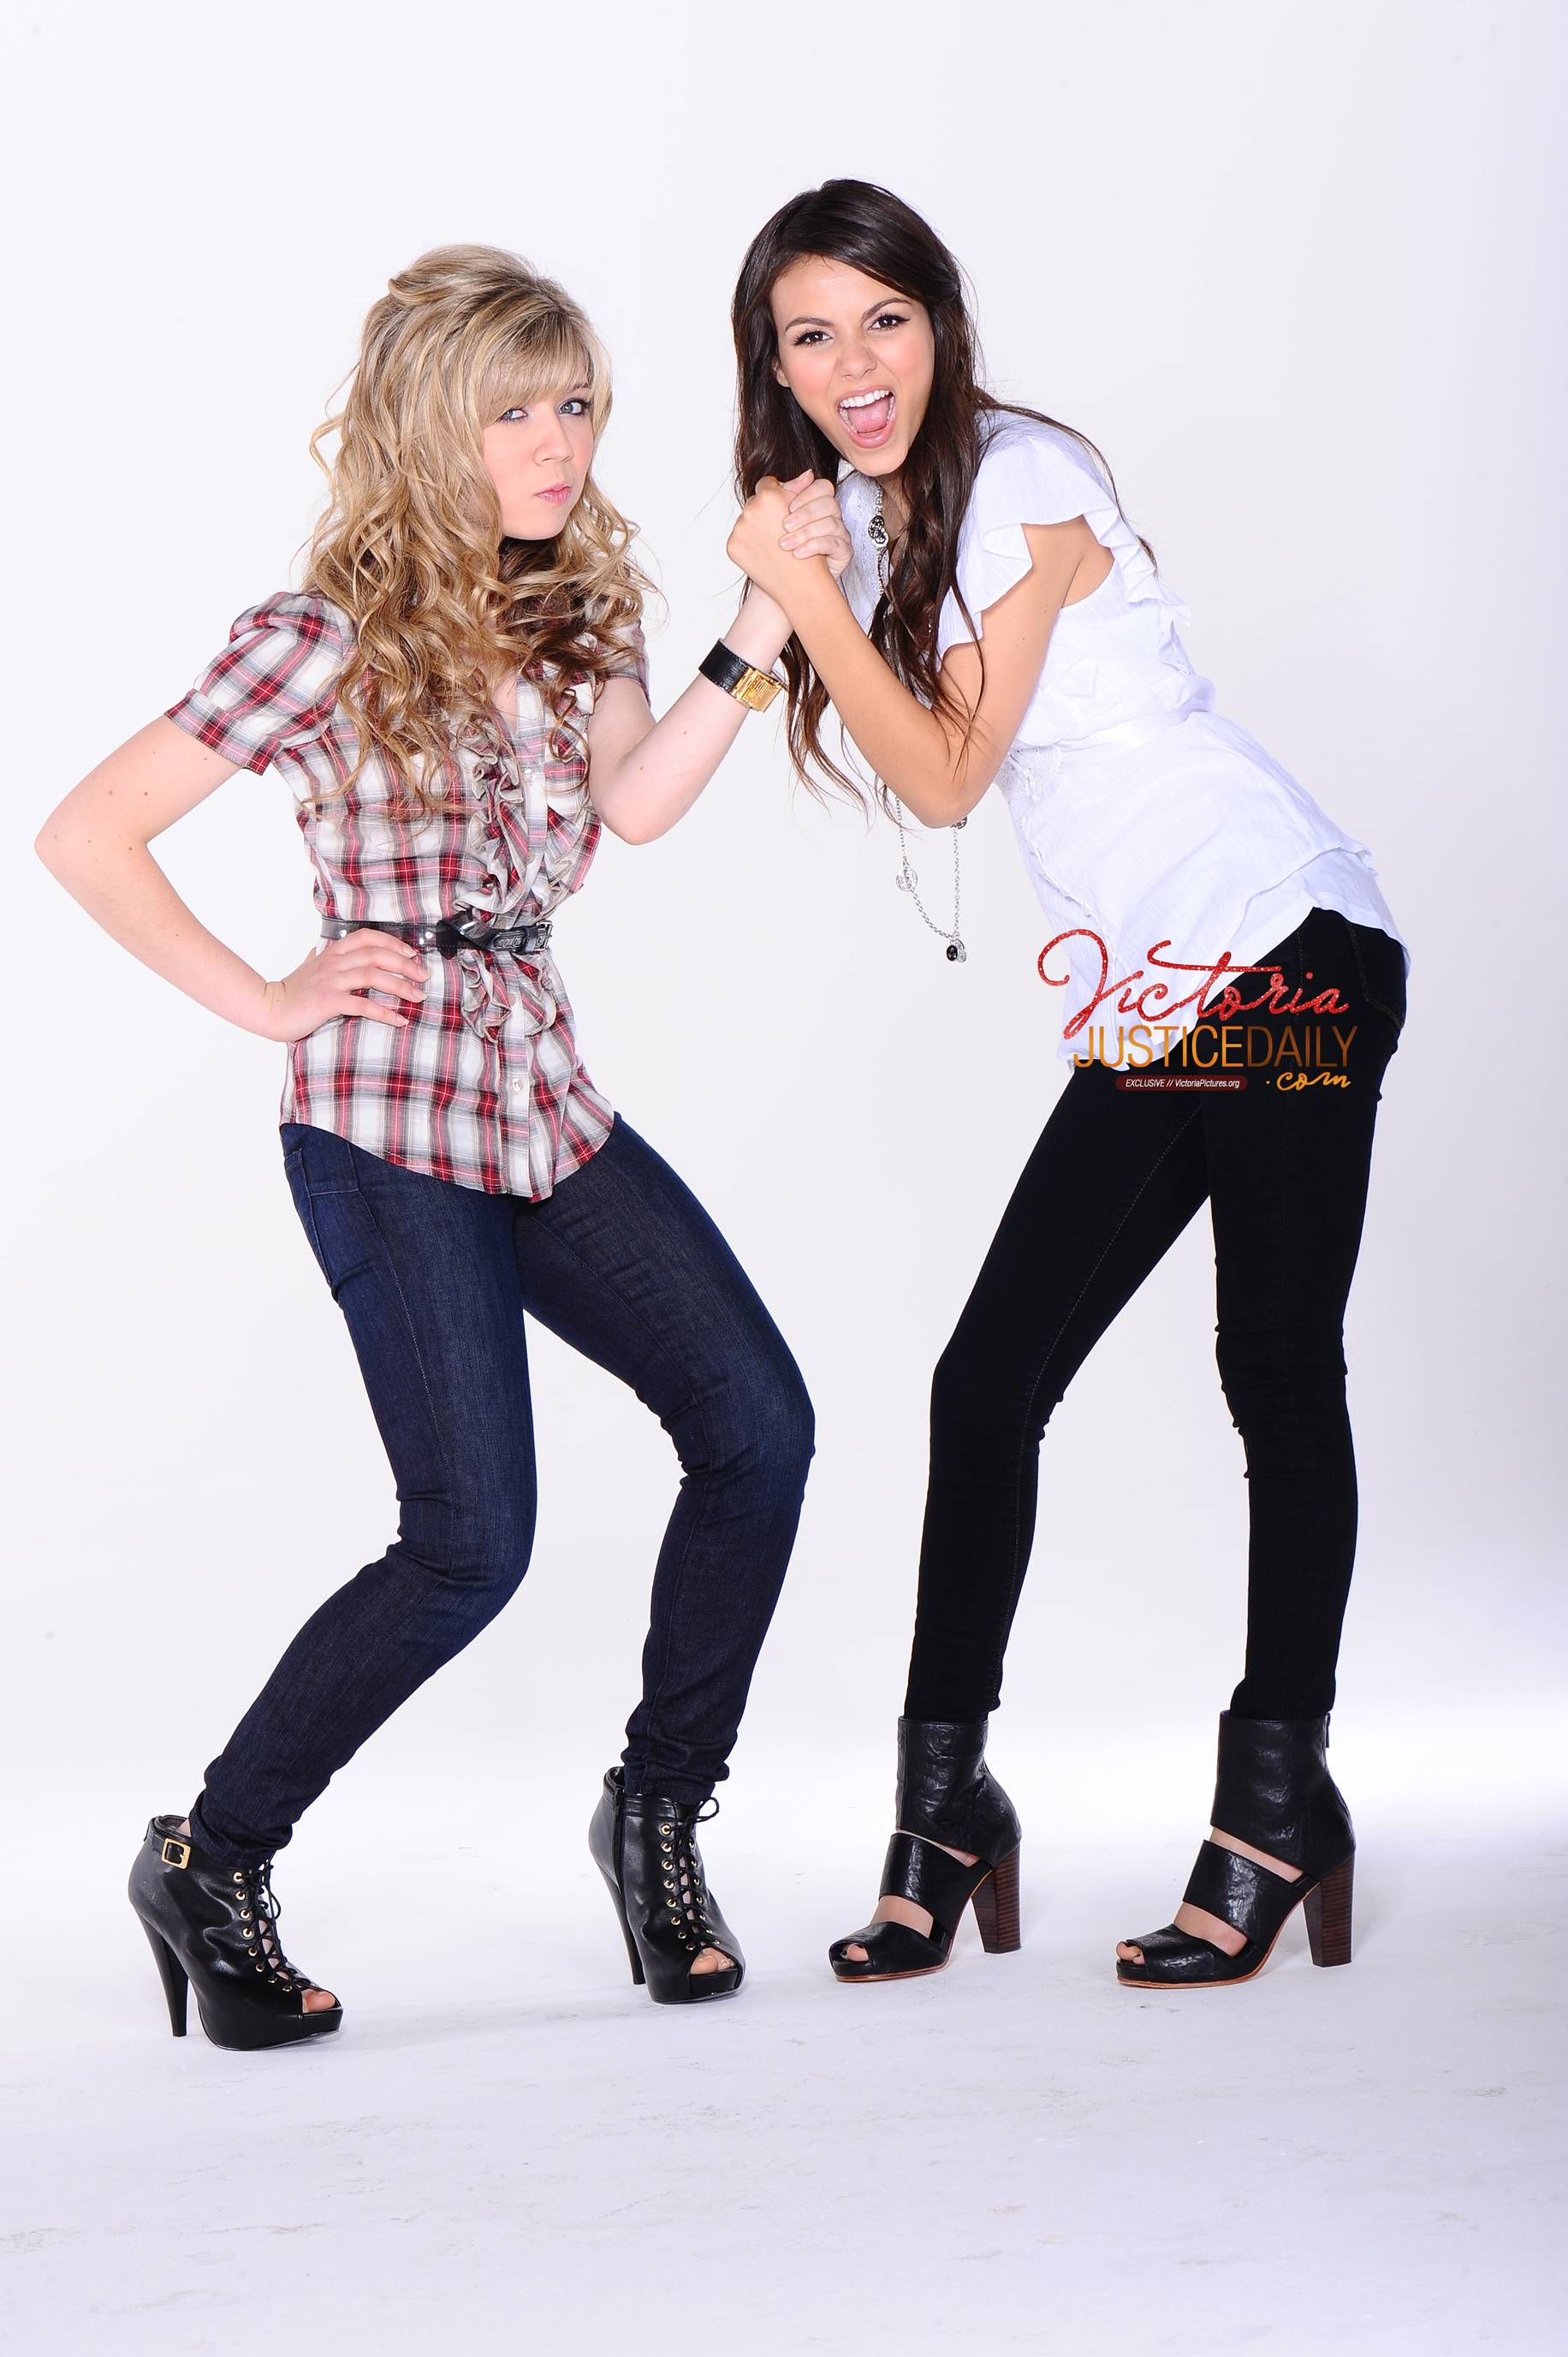 Jennette McCurdy Jennette McCurdy & Victoria Justice